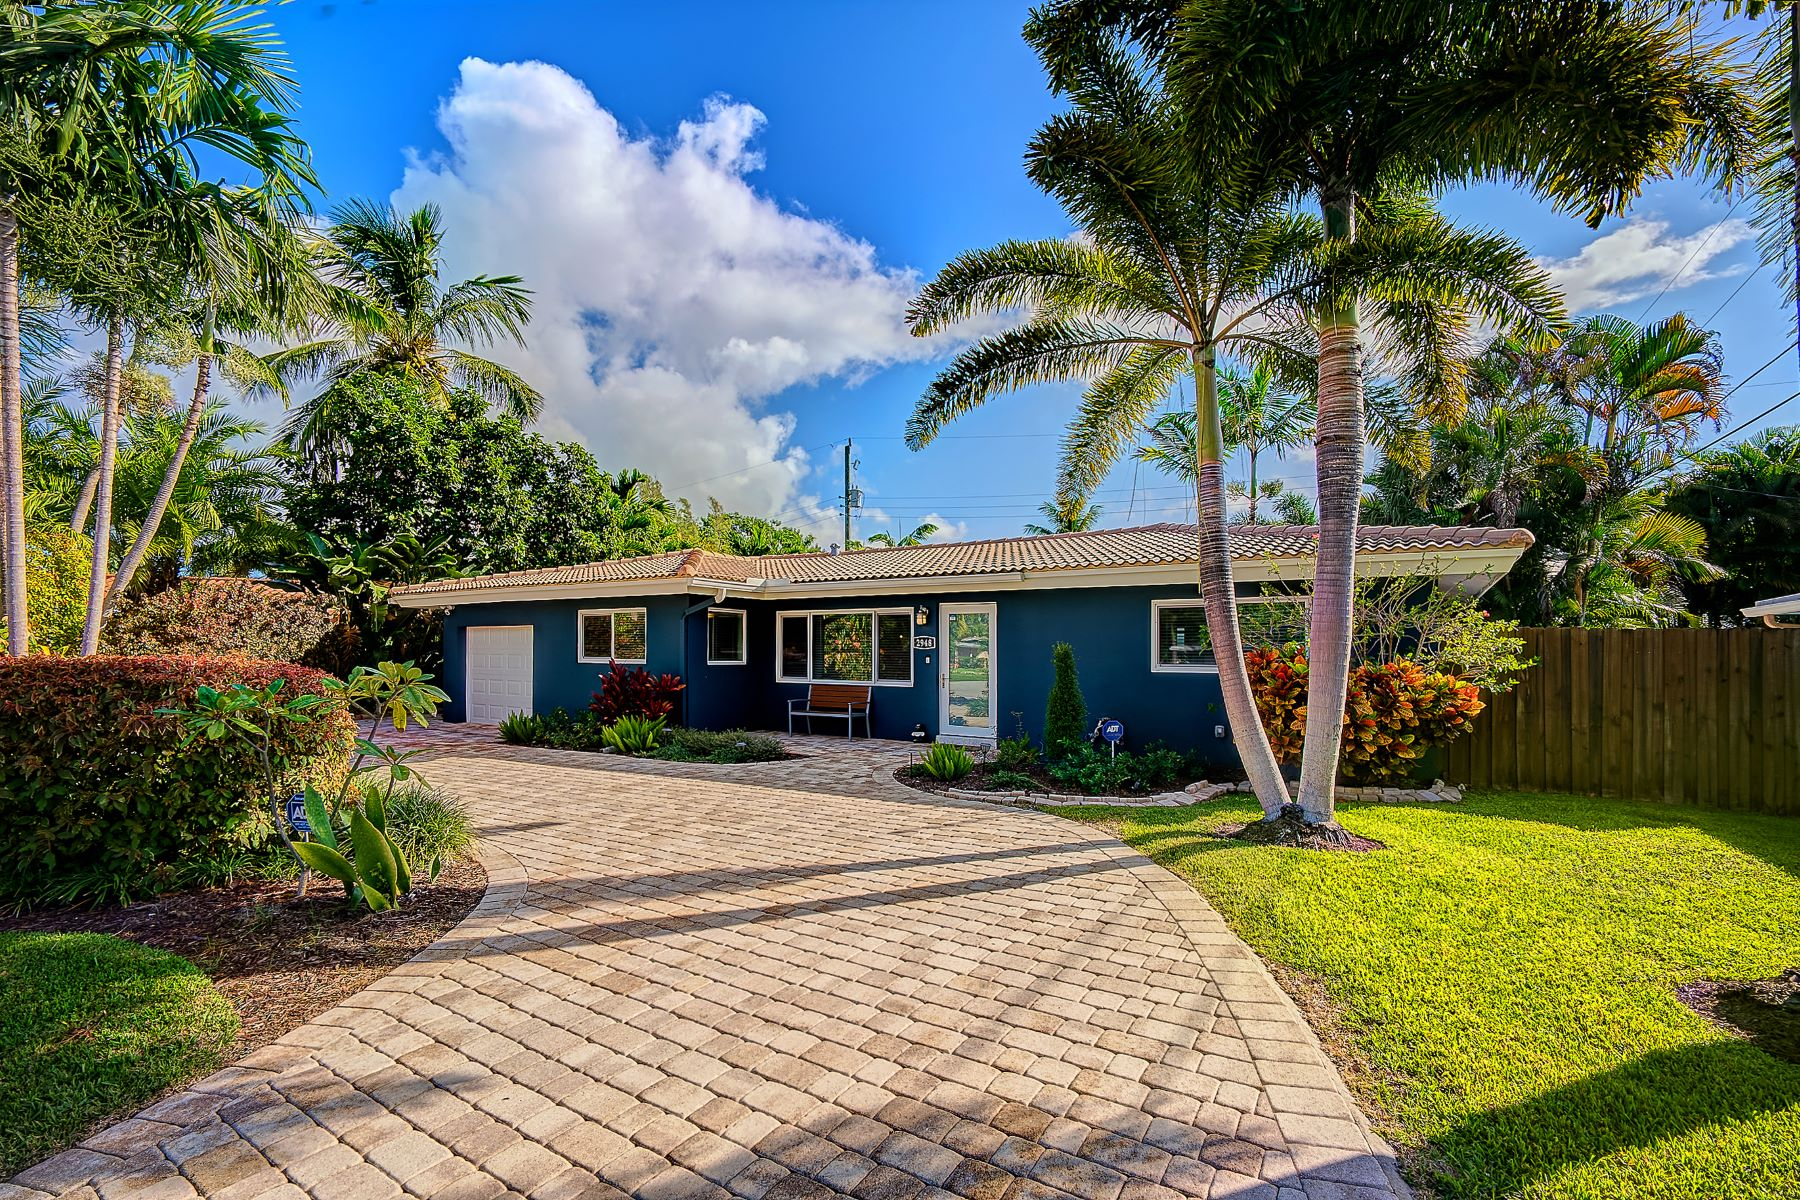 Single Family Homes for Sale at 2948 Nw 6th Ter Wilton Manors, Florida 33311 United States